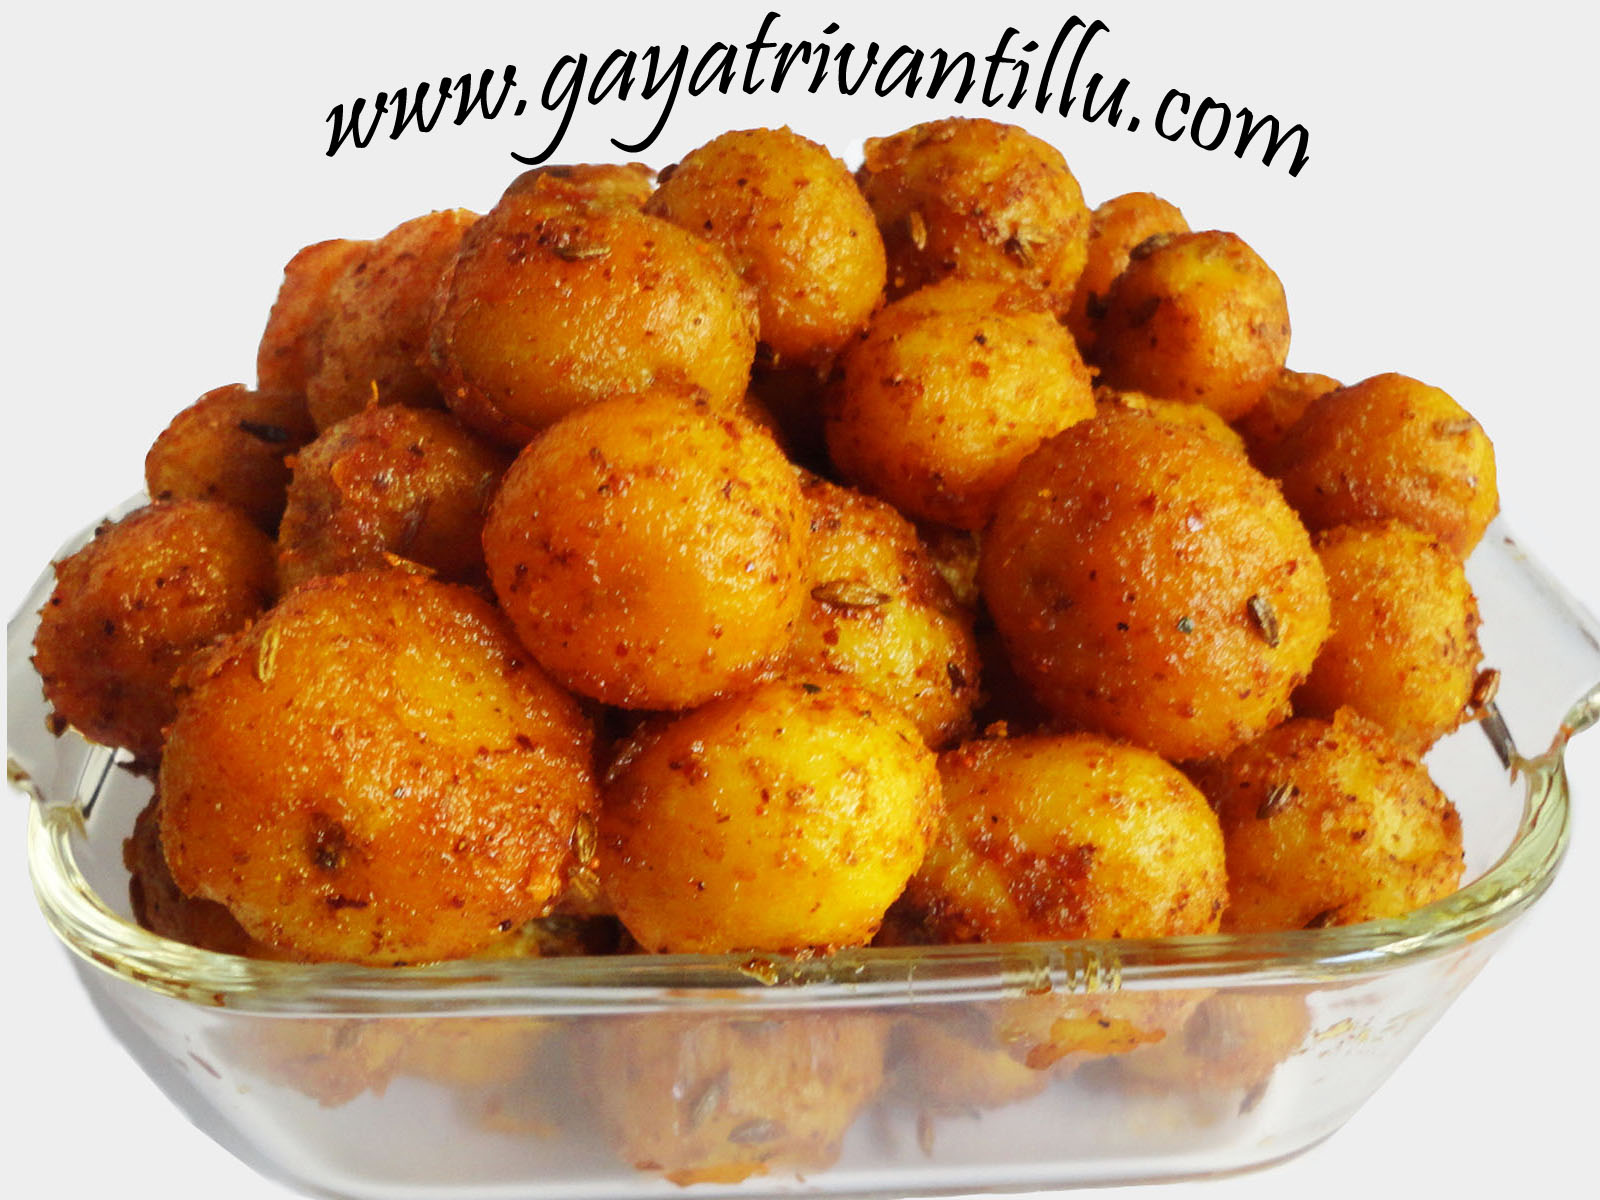 Baby potatoes fry bangaladumpala vepudu andhra telugu recipes baby potatoes fry bangaladumpala vepudu andhra telugu recipes indian vegetarian food andhra recipes telugu vantalu gayatri vantillu forumfinder Image collections